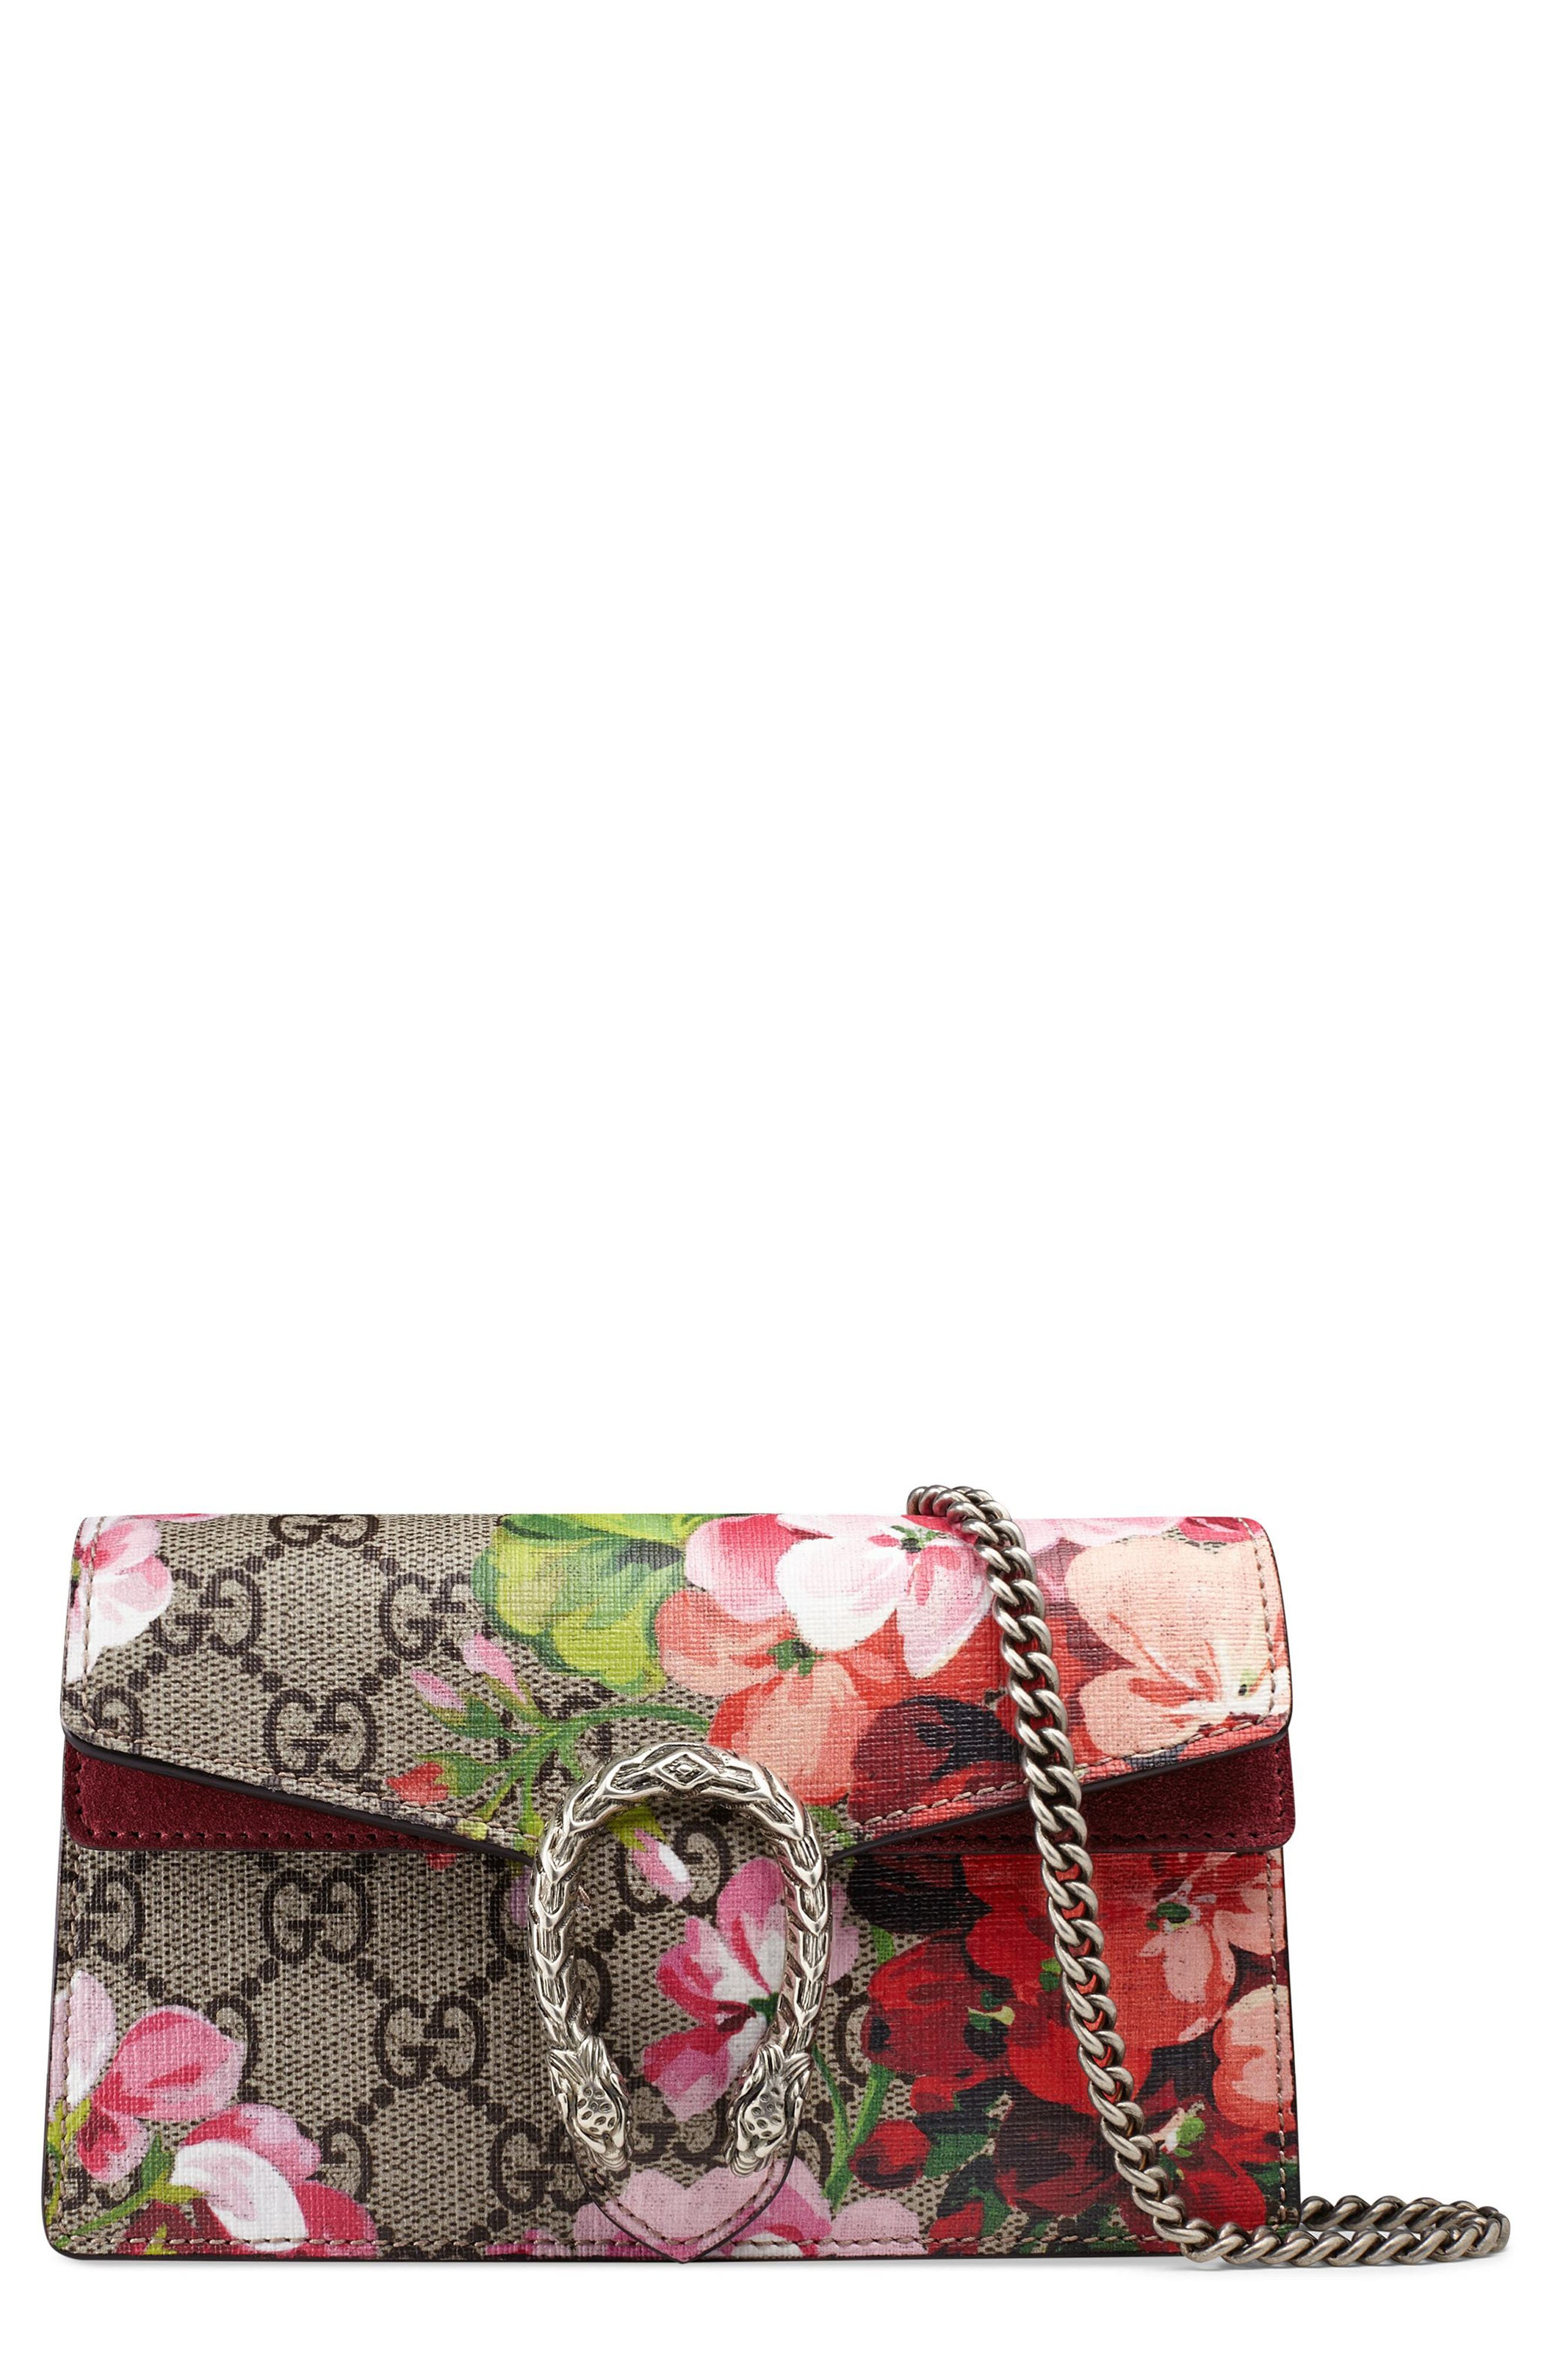 Gucci Super Mini Dionysus GG Blooms Canvas Shoulder Bag